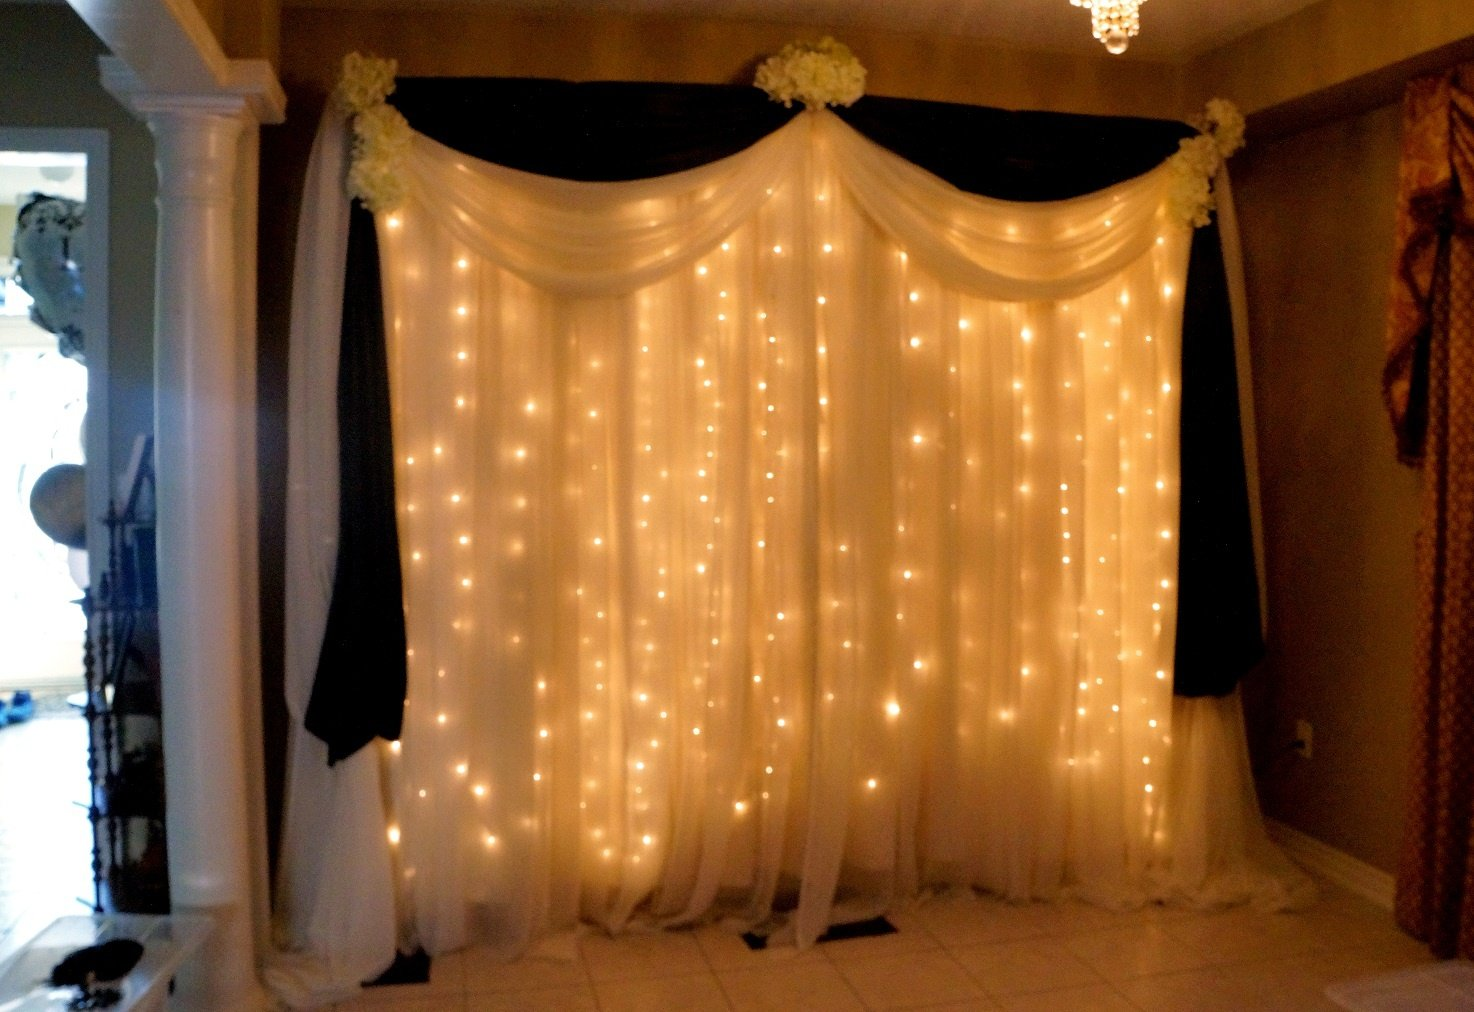 https://0901.nccdn.net/4_2/000/000/046/6ea/Home-Backdrop-Twinkle-lights---Copy-1474x1012.jpg